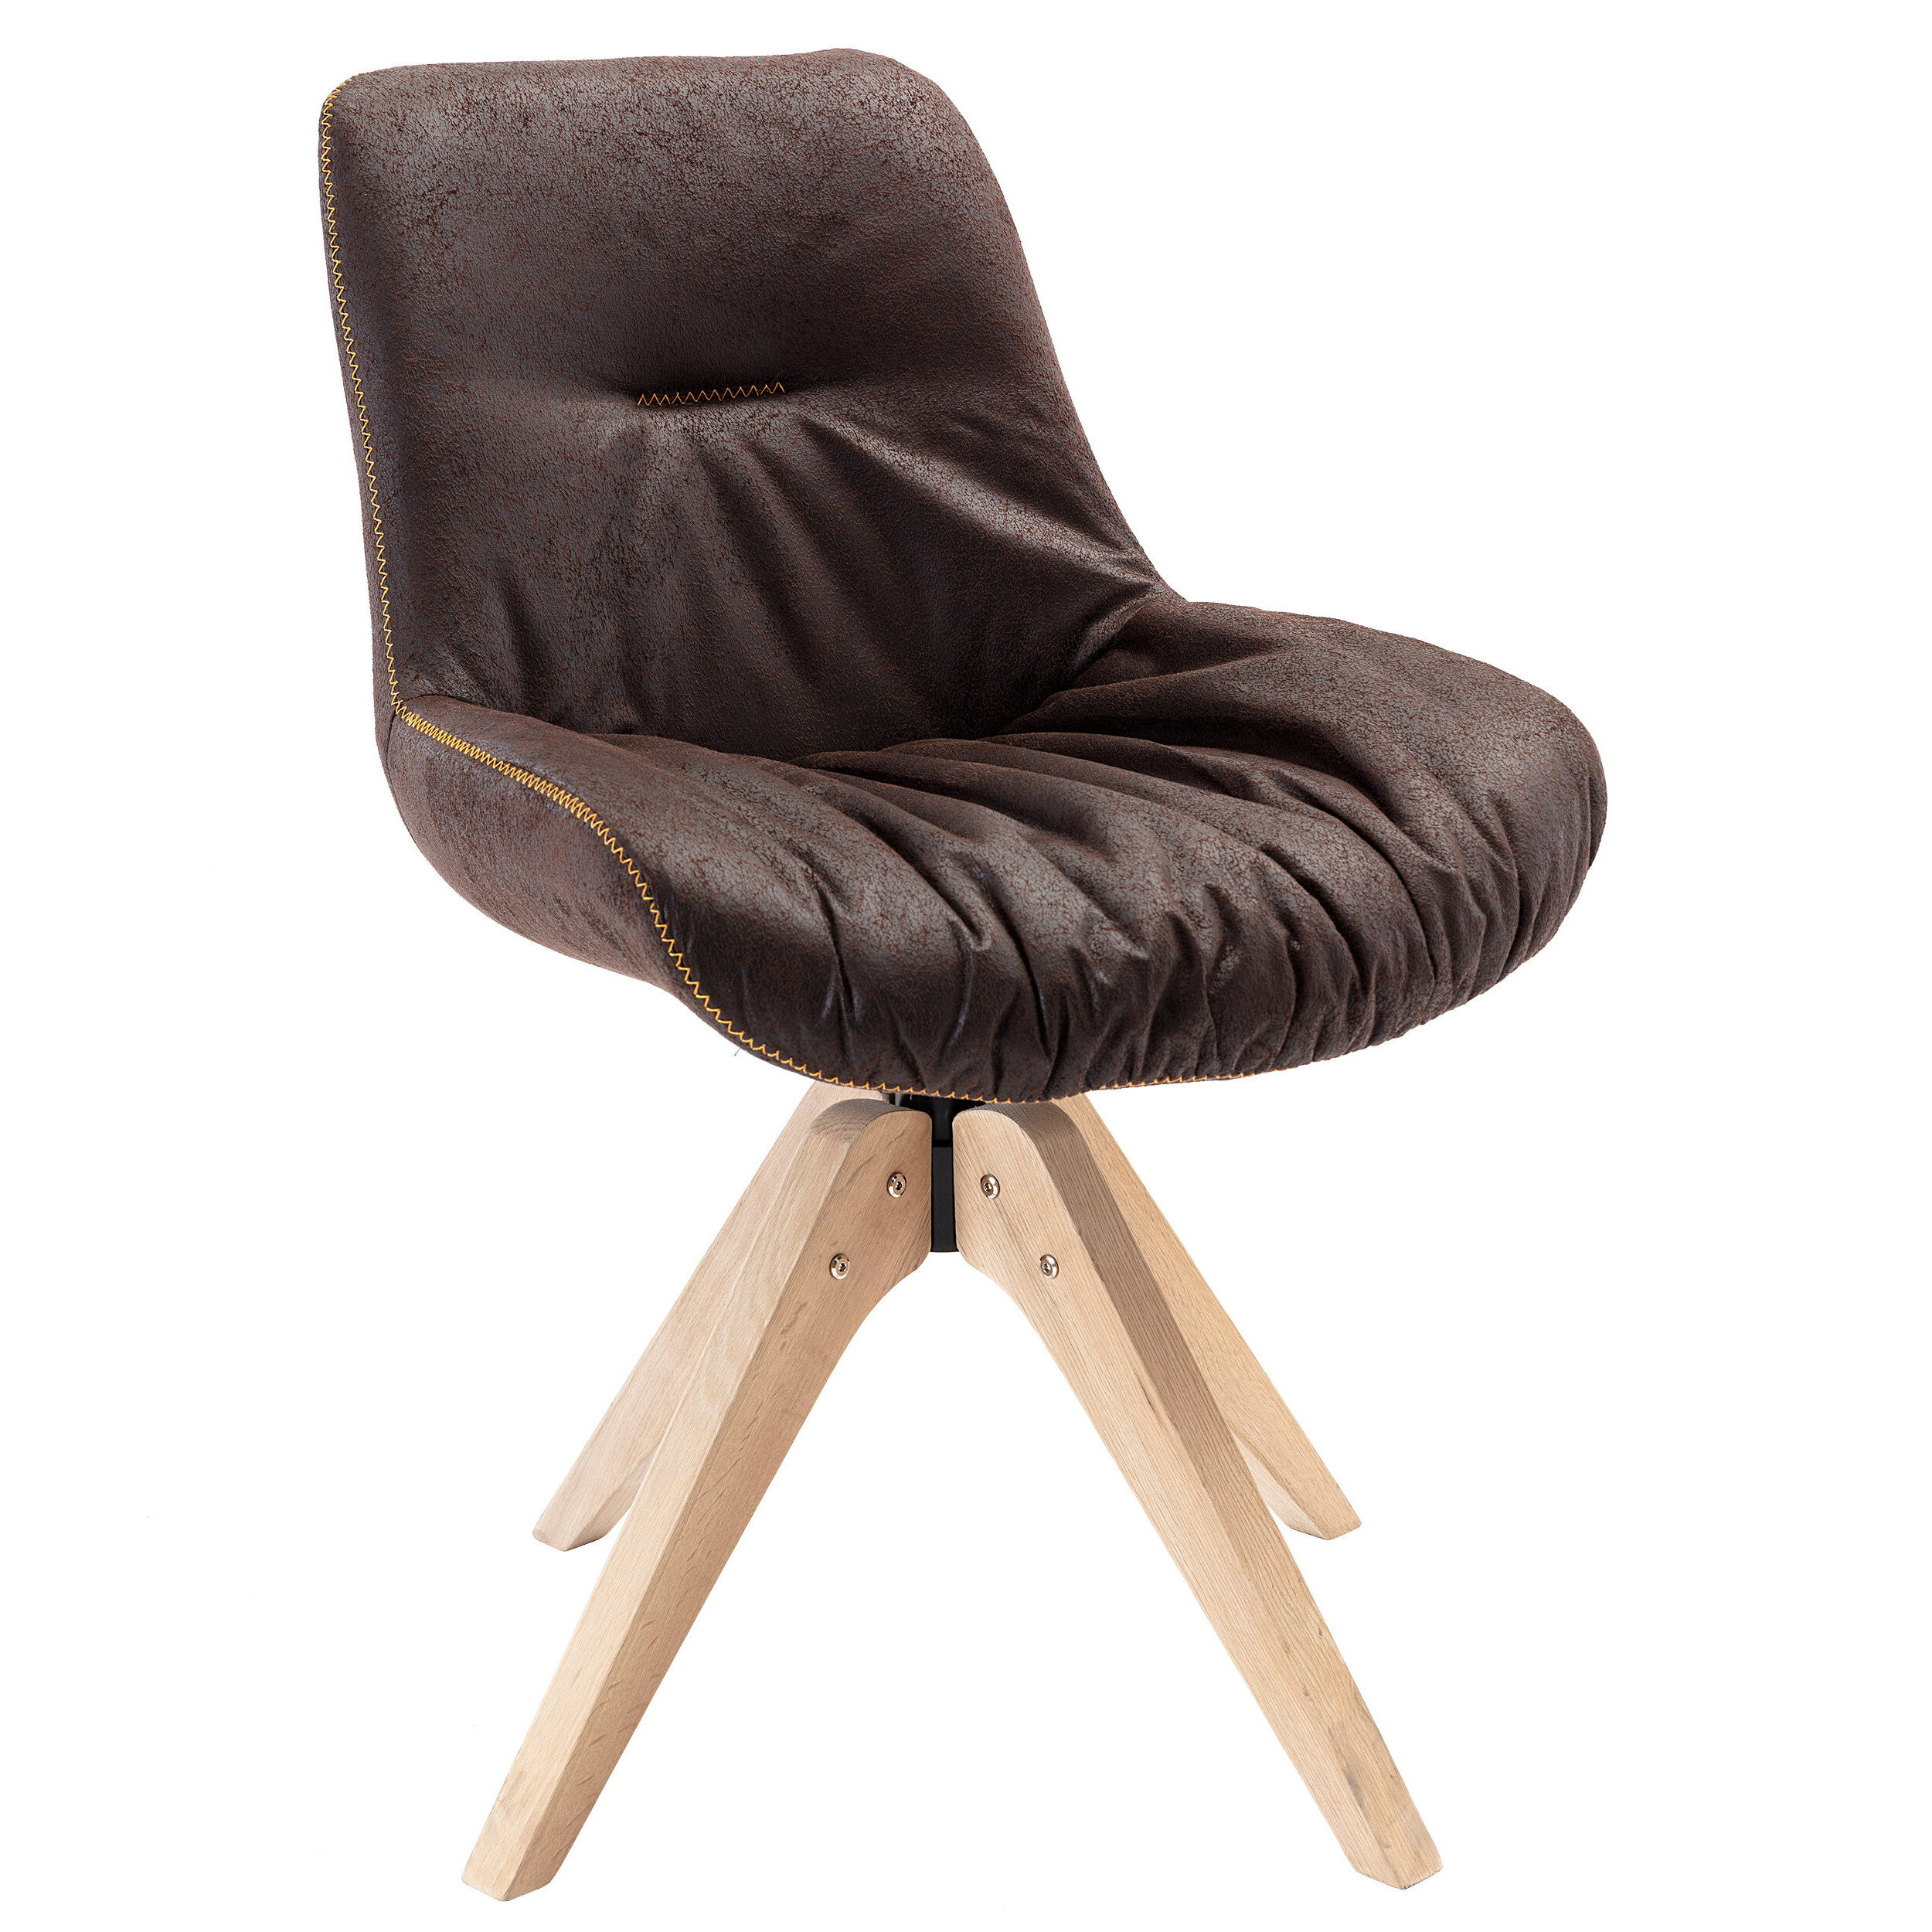 Arabelle Swivel Side Chair Throughout Most Current Brister Swivel Side Chairs (View 10 of 20)